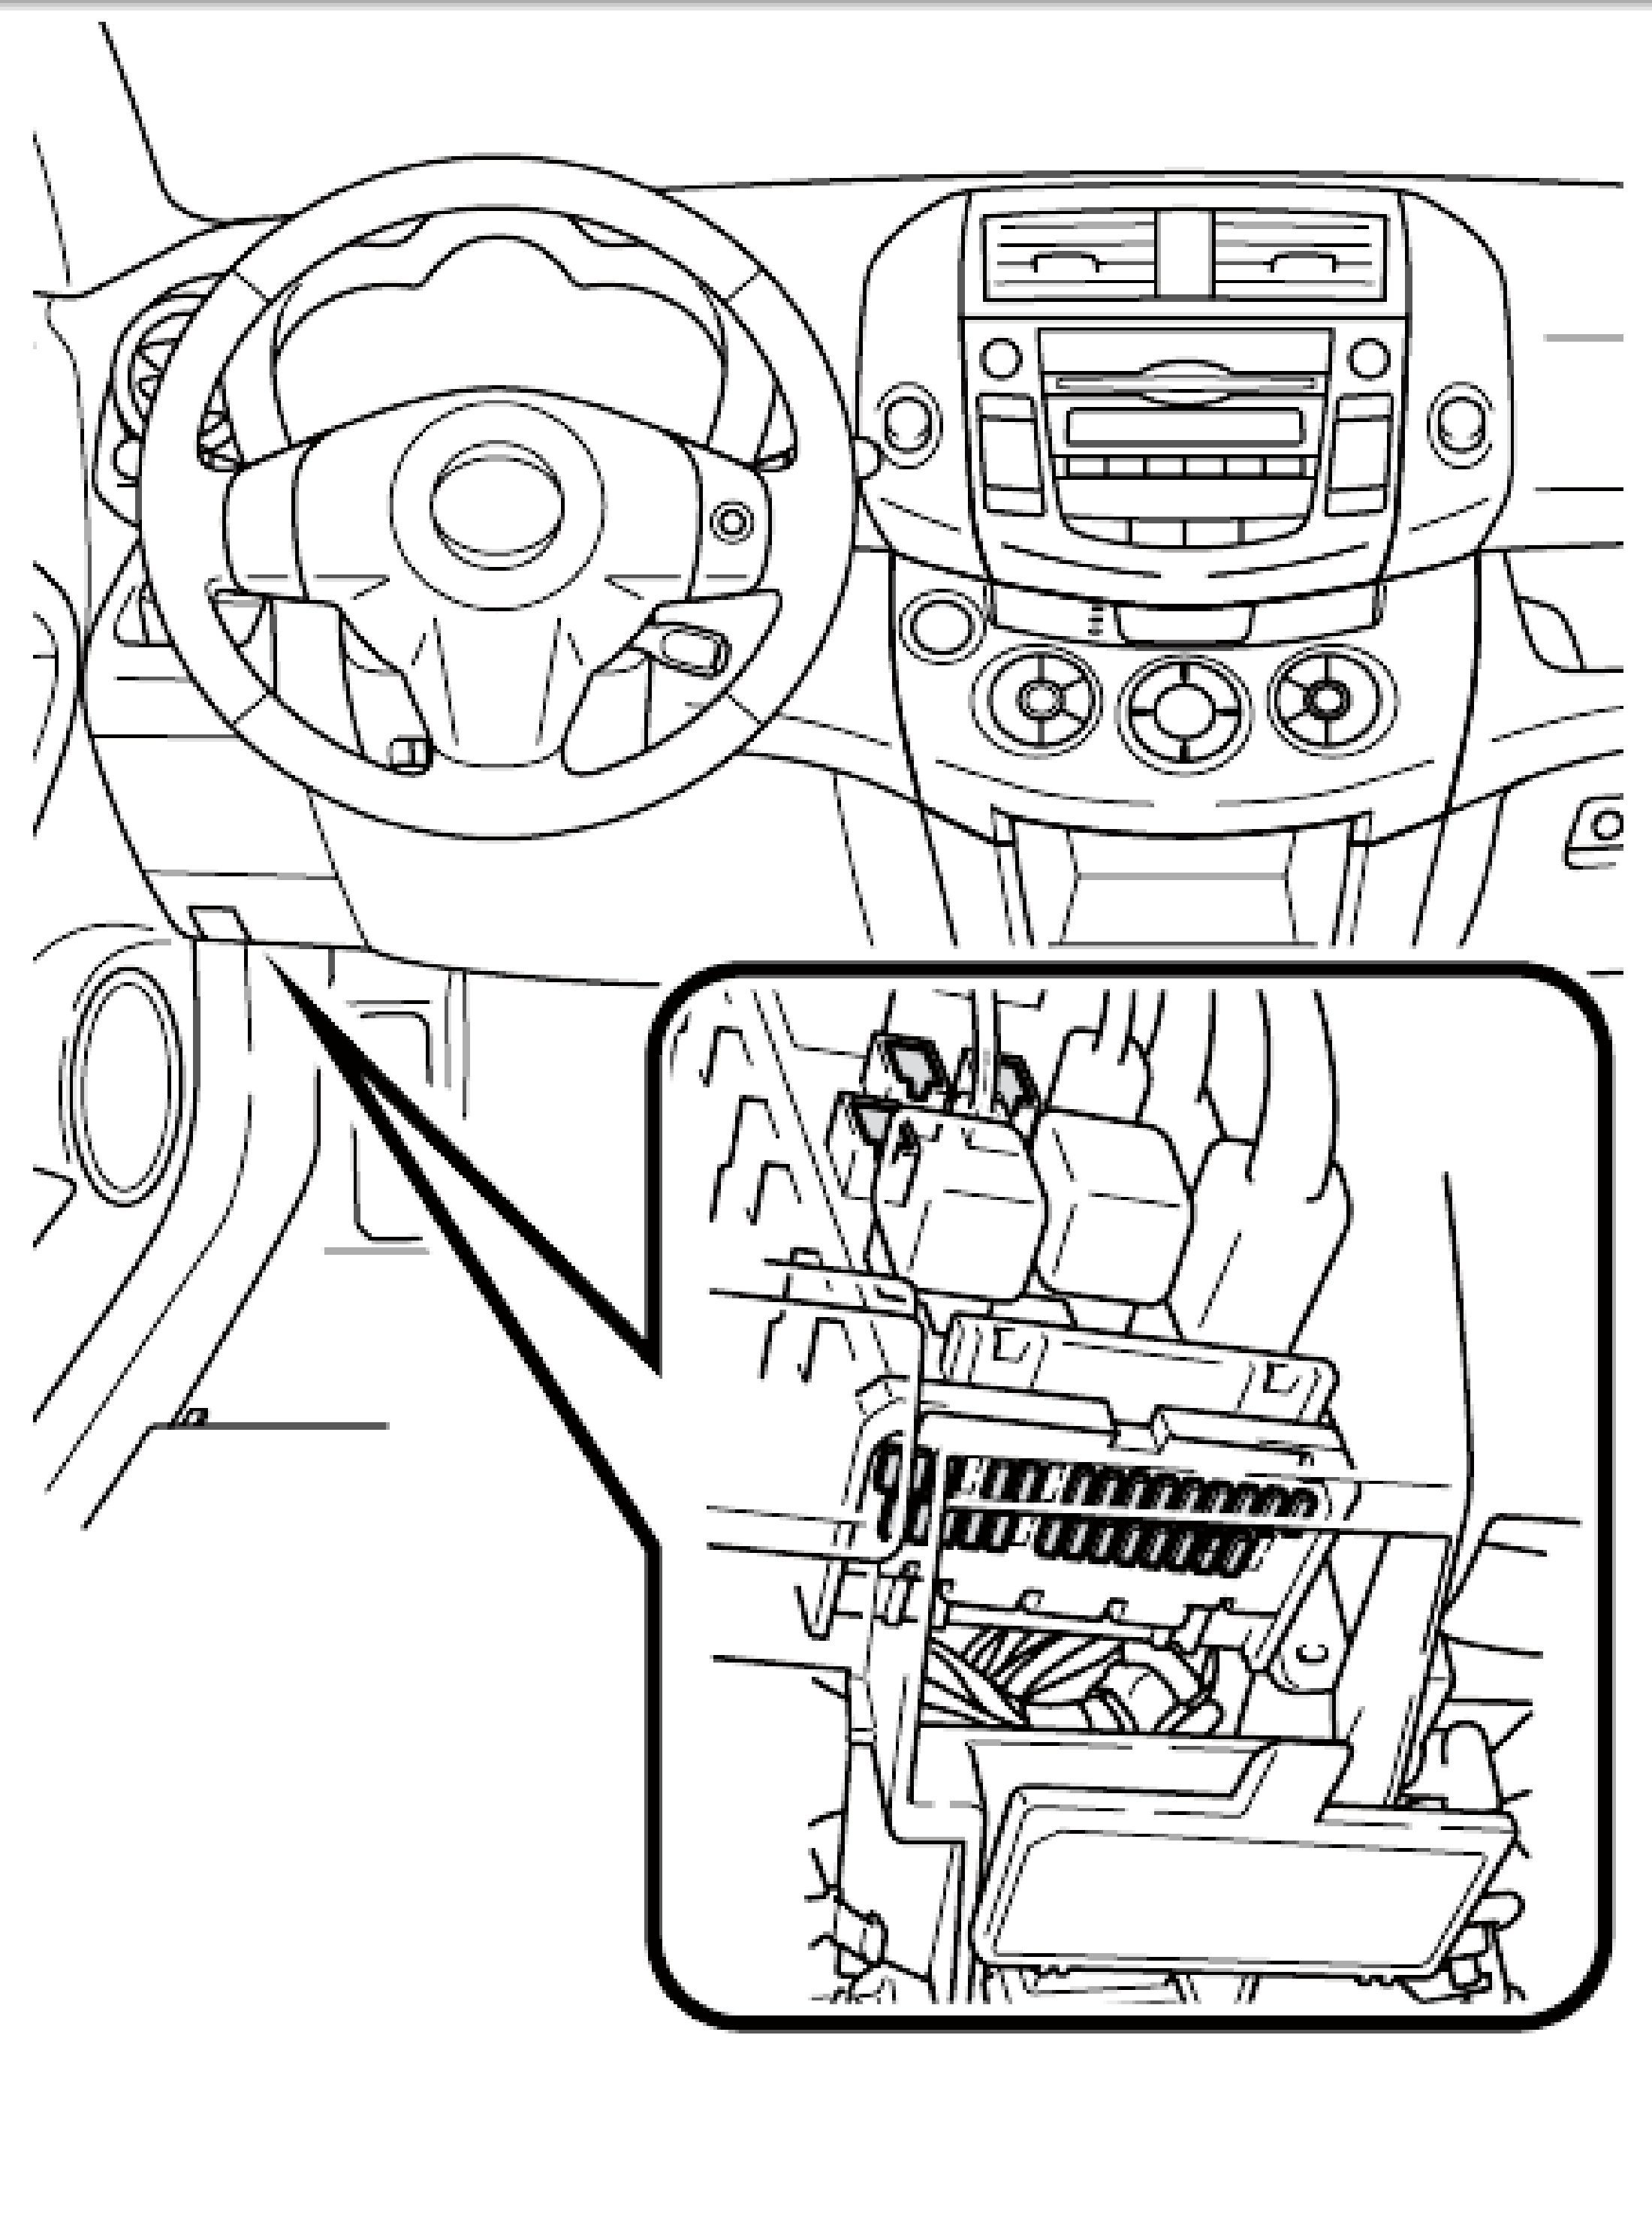 1999 rav4 fuse box diagram